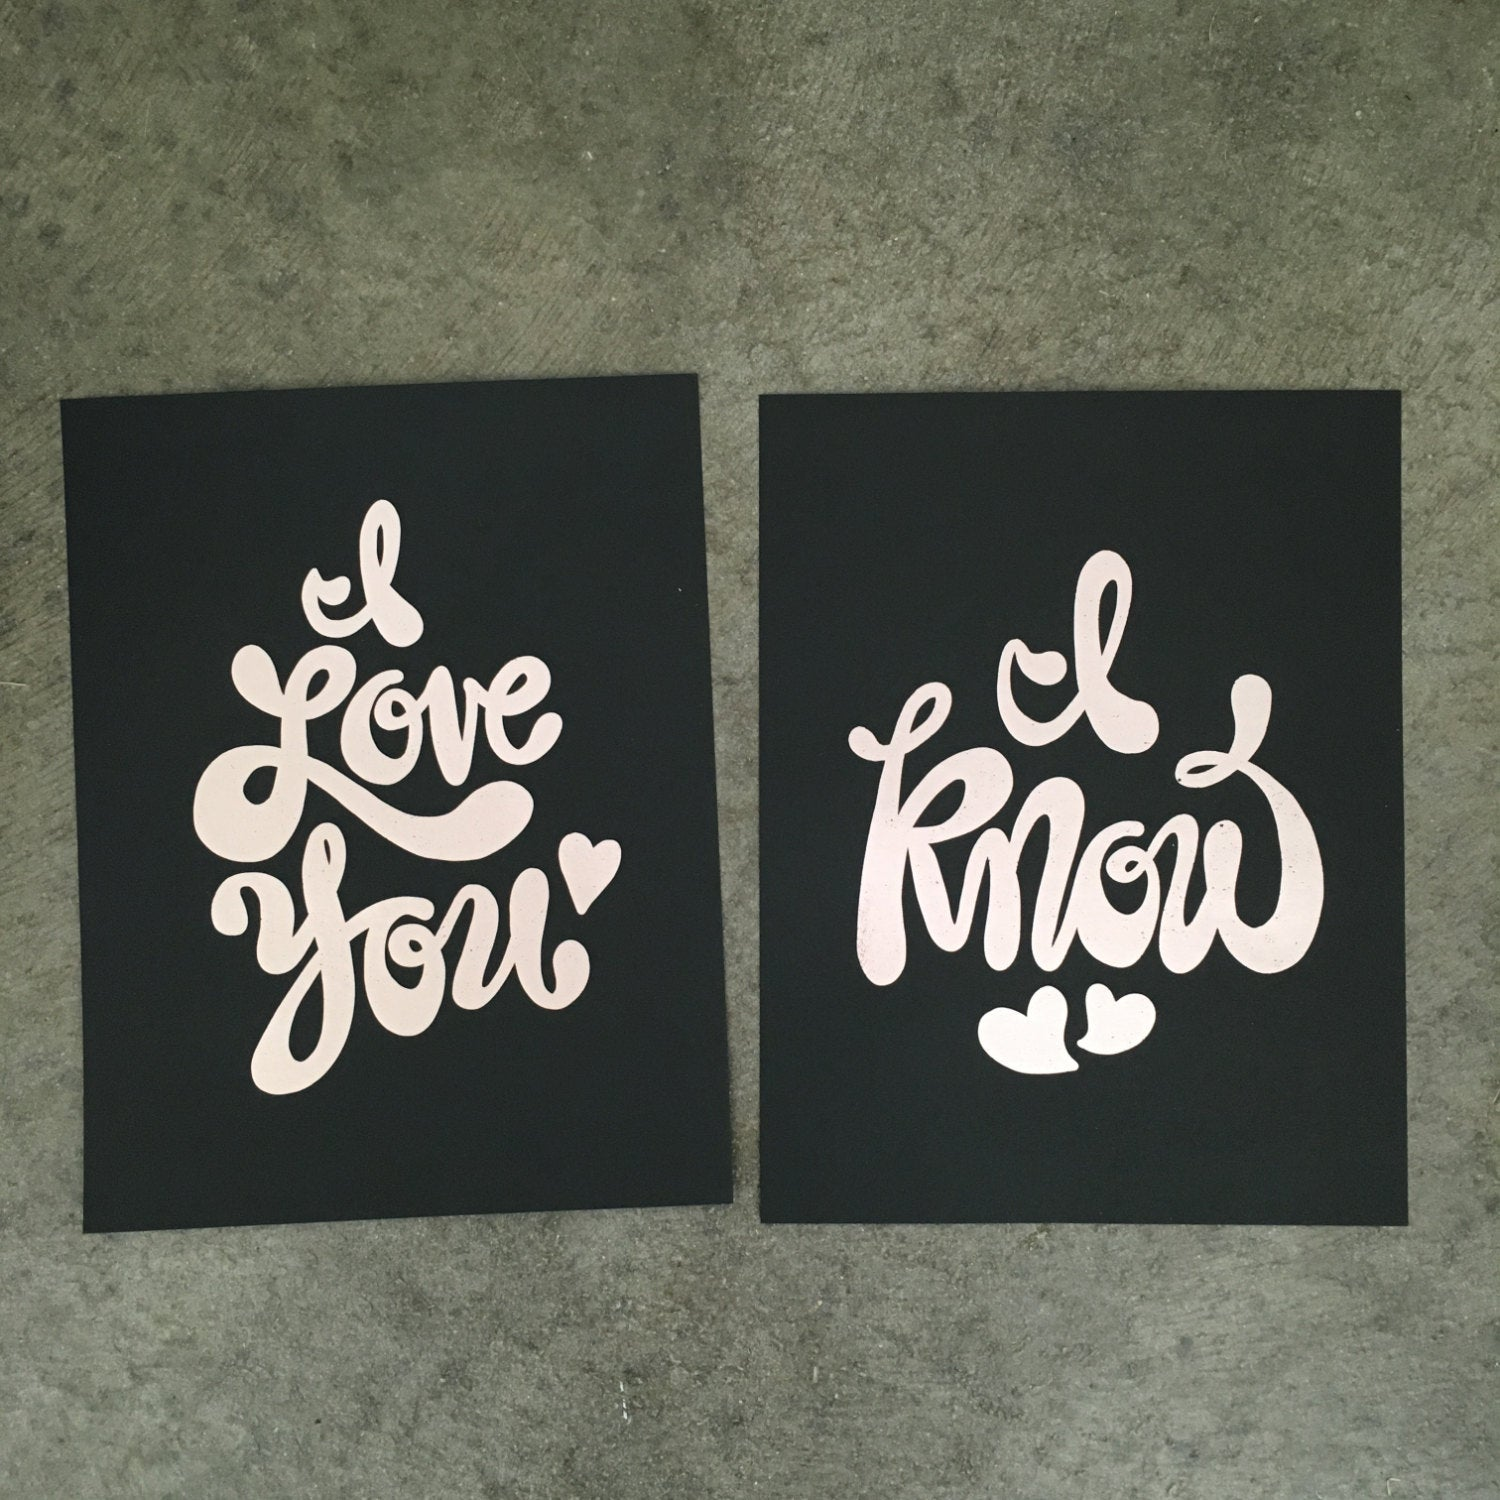 "Set of Two 8.5x11 Hand-Lettered Star Wars Gunmetal FOIL Prints ""I Love You"" ""I Know"" - Han and Leia"